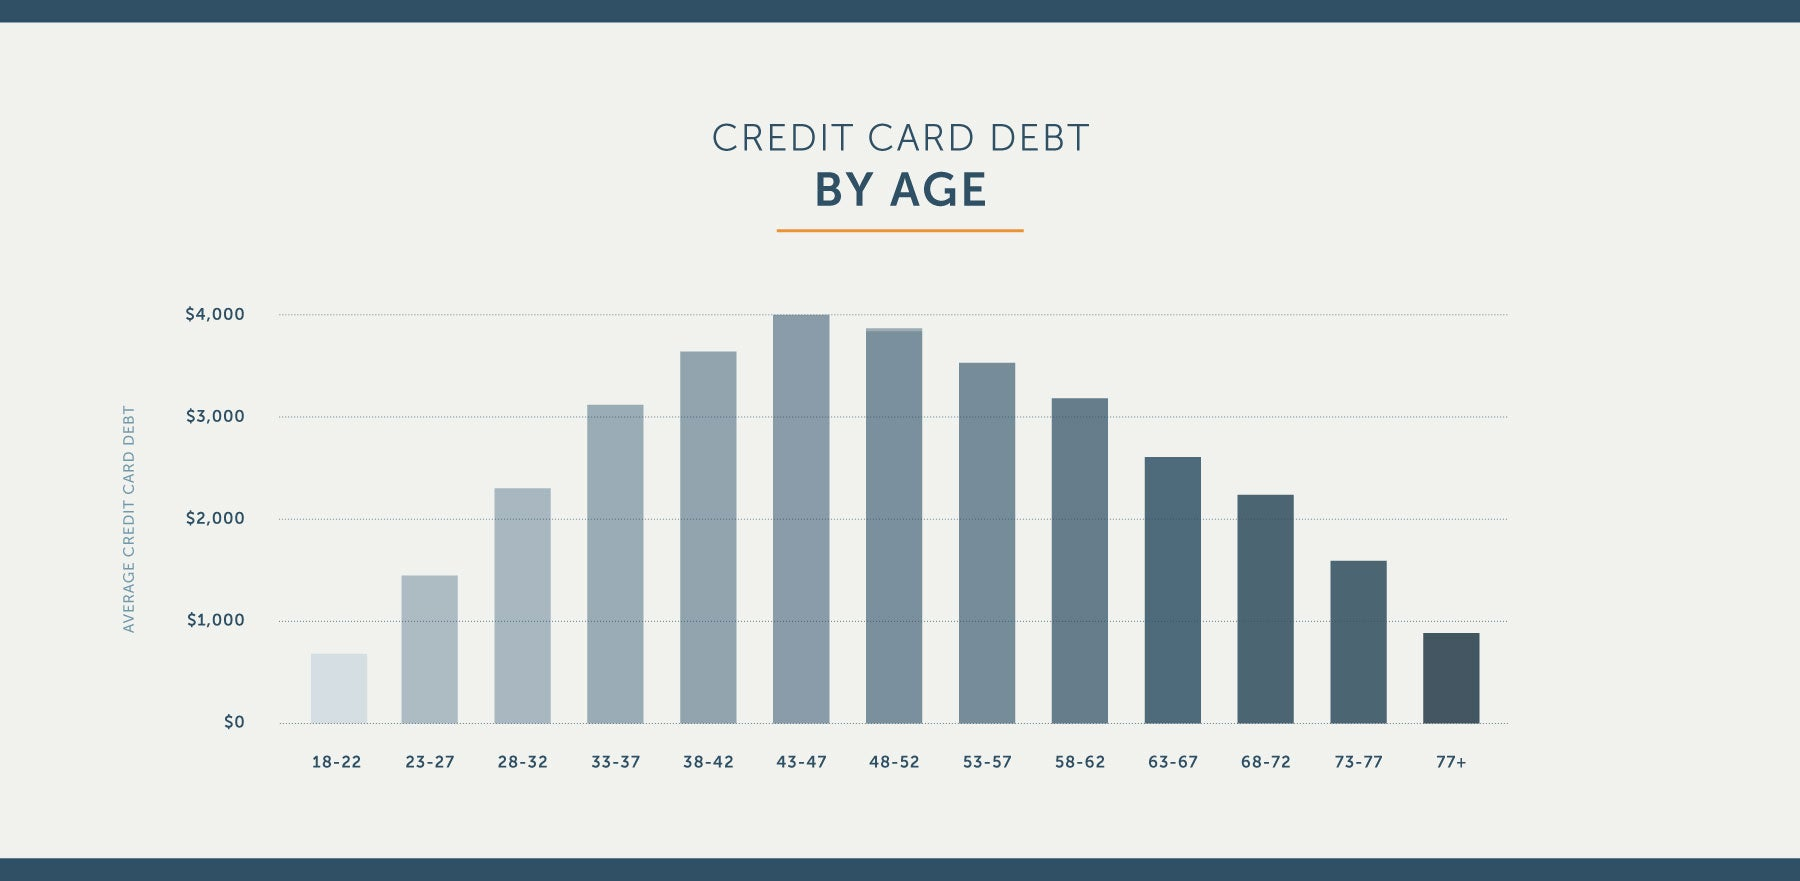 average credit card debt by age in america